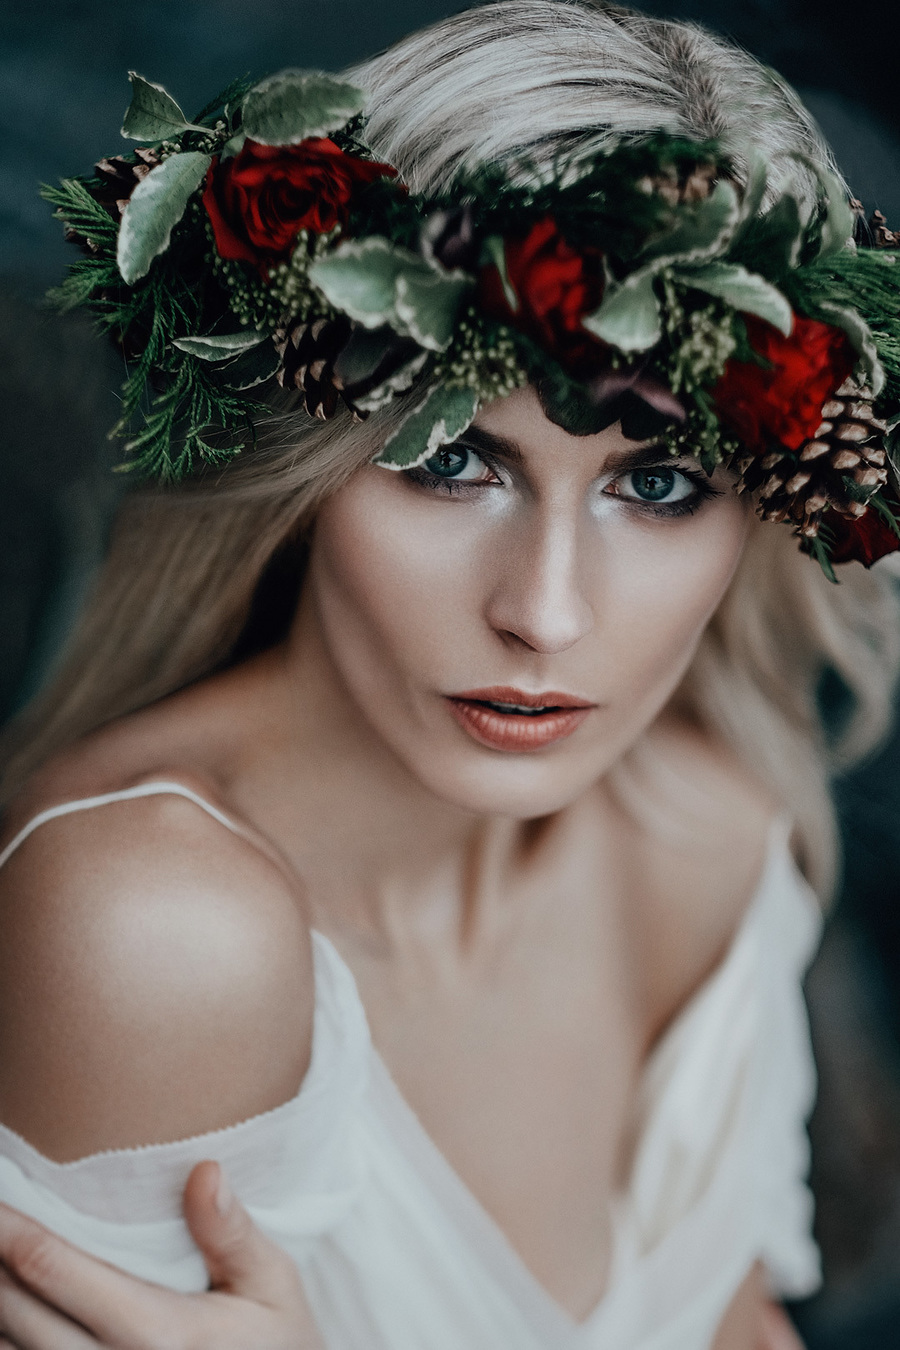 Winters Bride / Photography by Marcus Hodges, Model RoxySkrabka, Post processing by Marcus Hodges / Uploaded 3rd August 2018 @ 02:56 PM